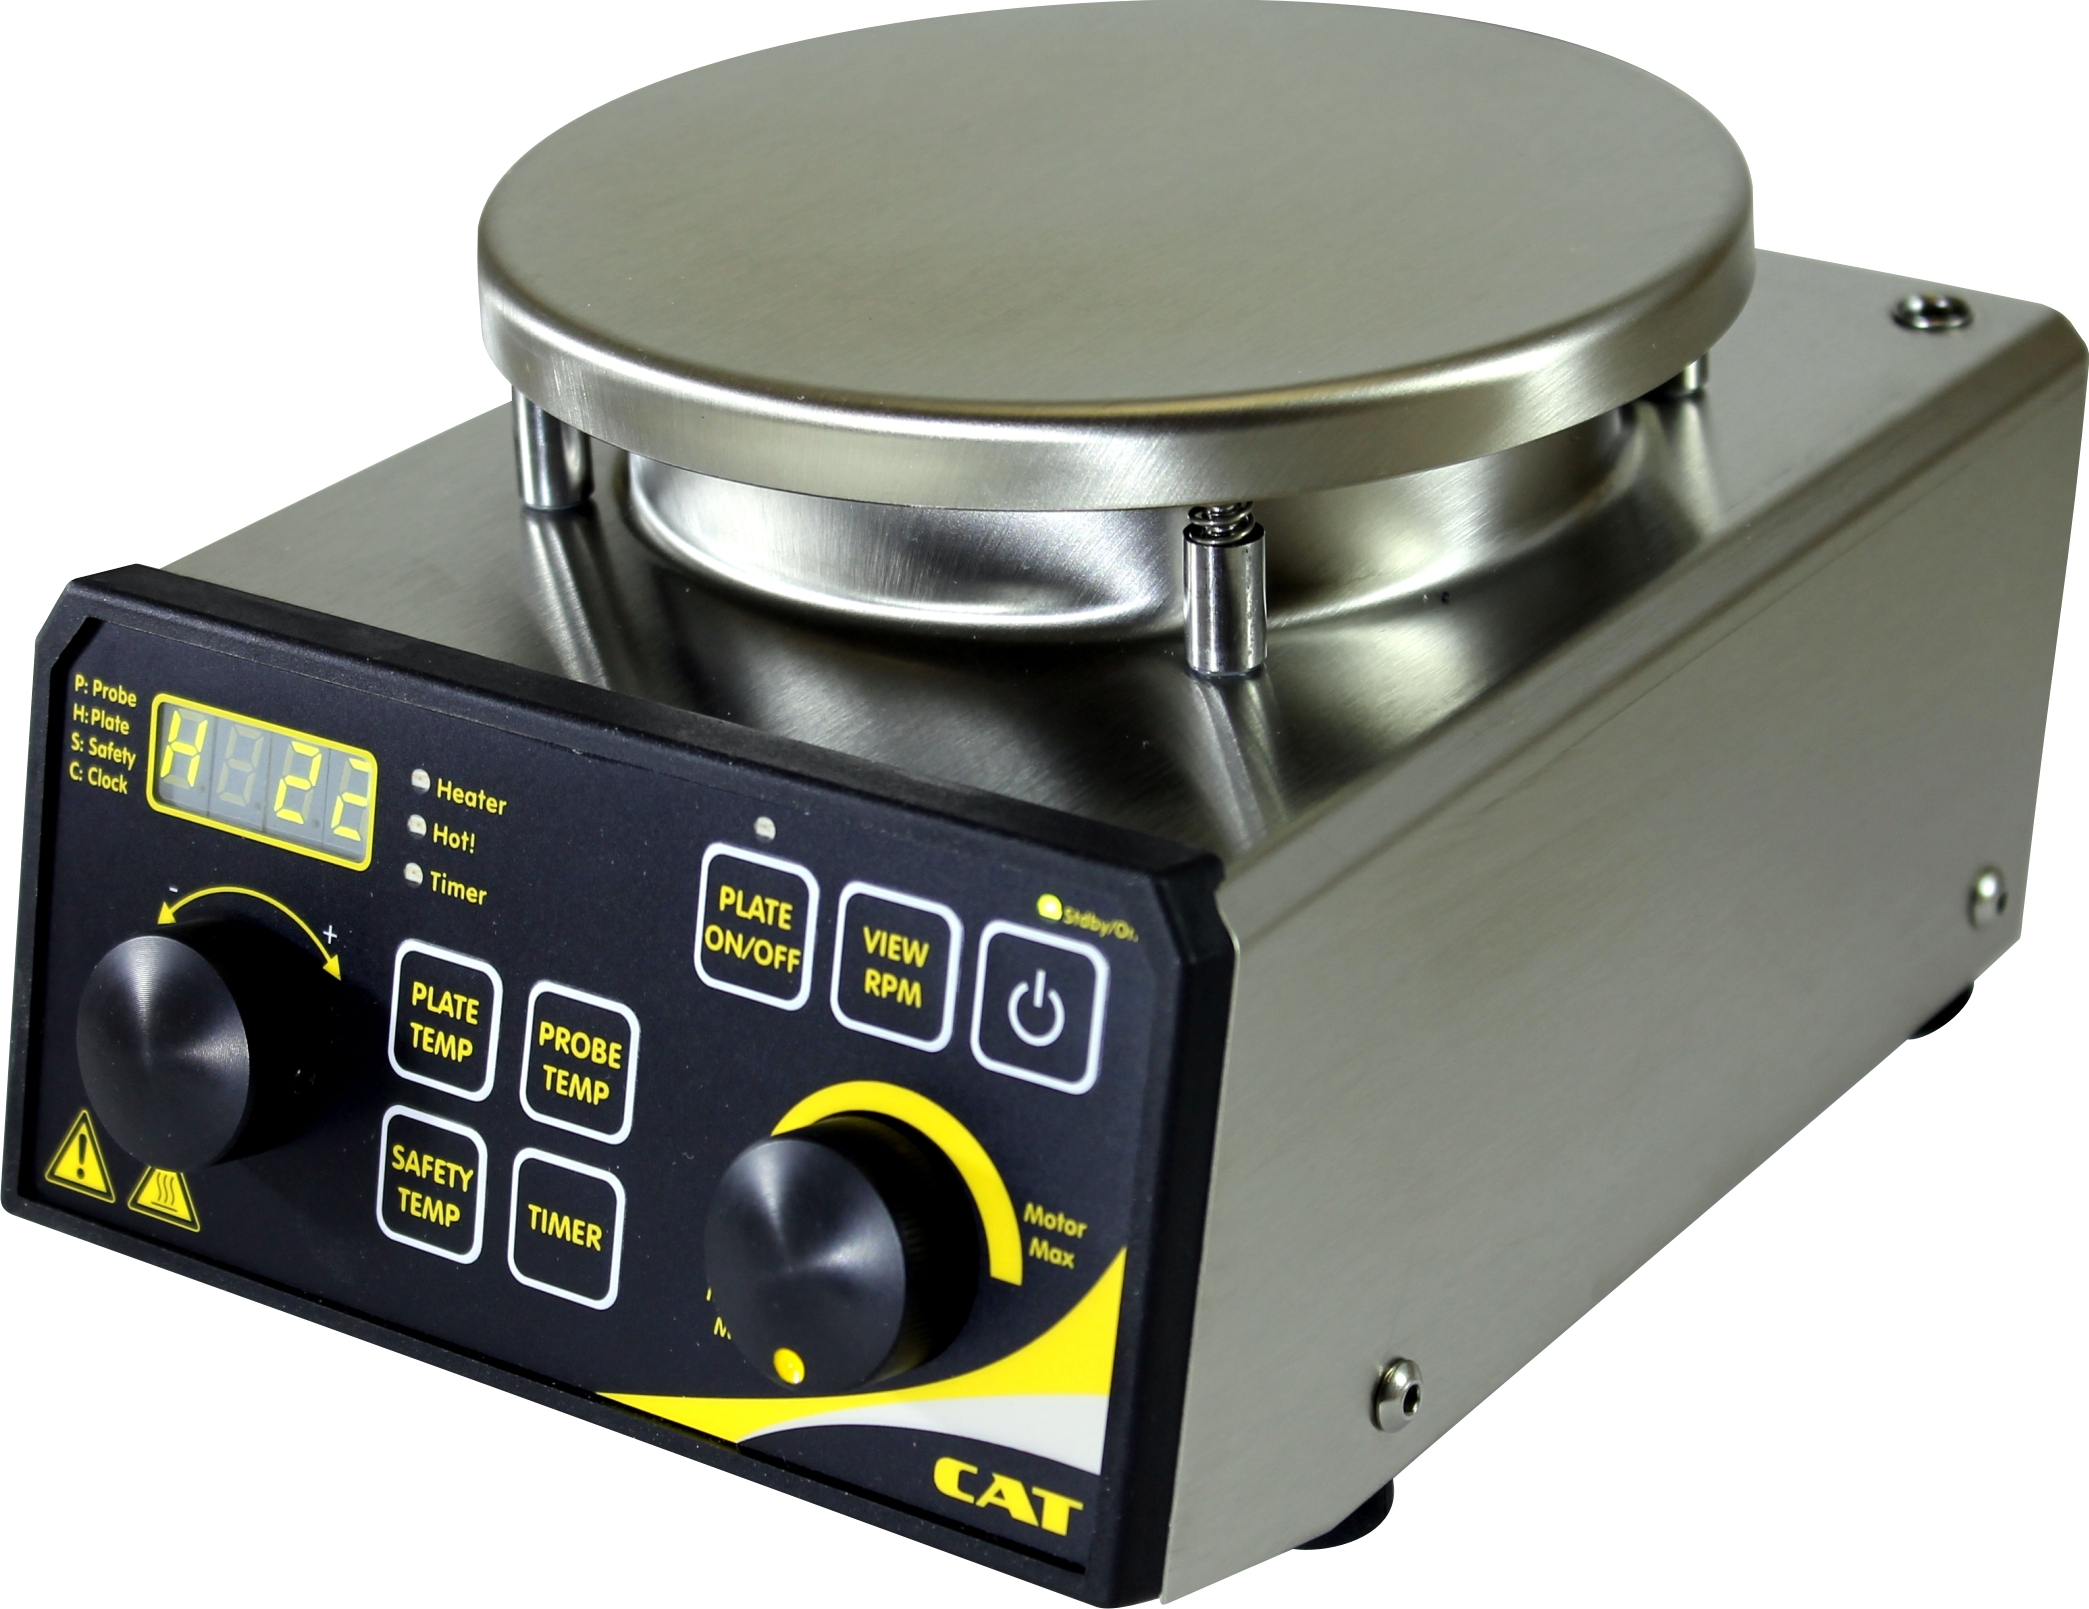 CAT M21 Hotplate Magnetic Stirrer